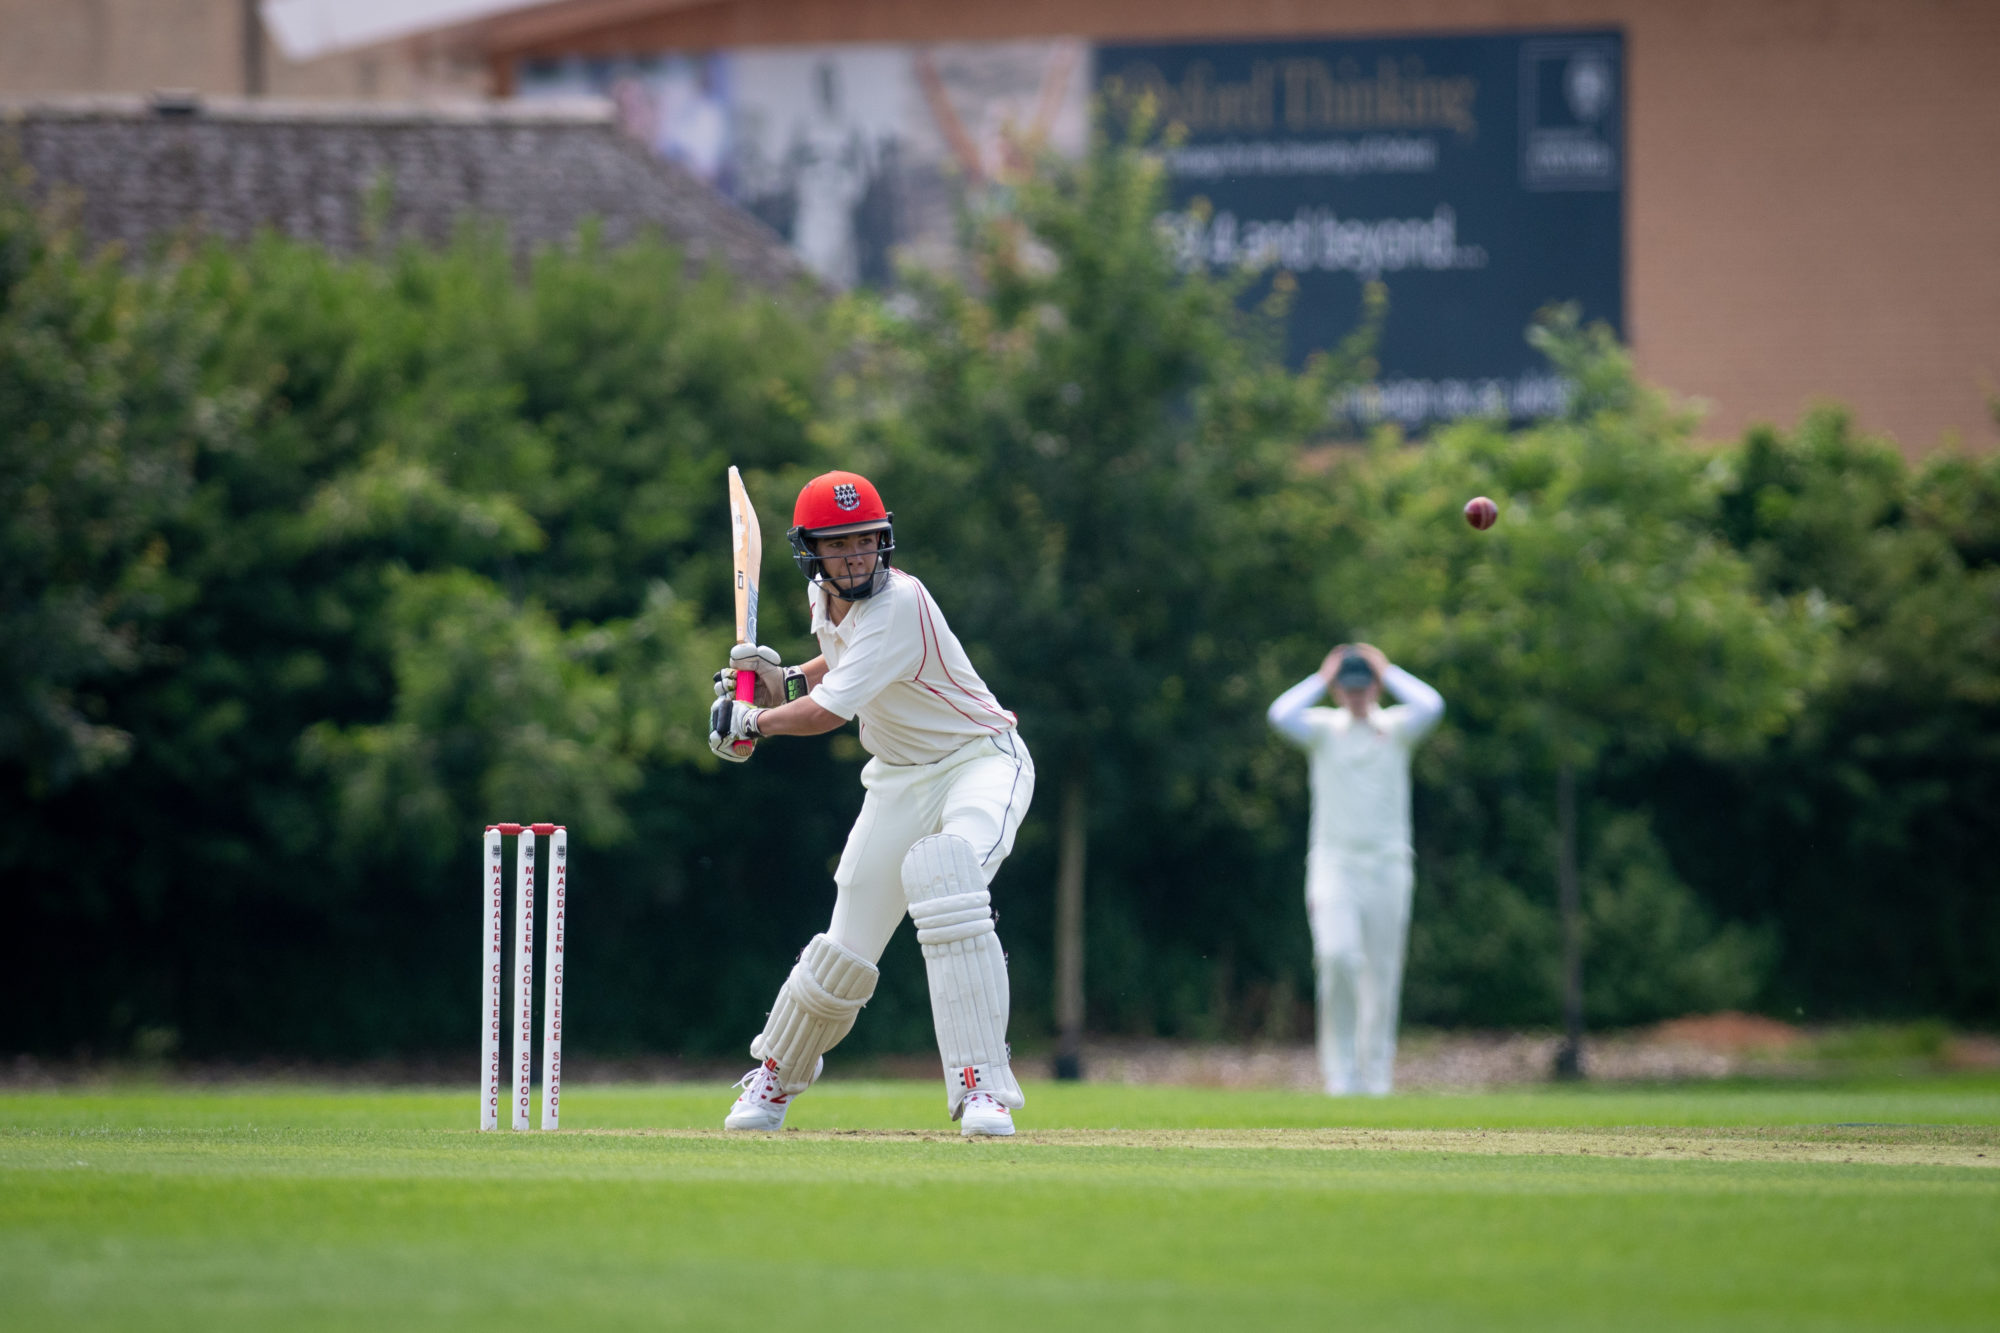 Magdalen College School pupil playing cricket